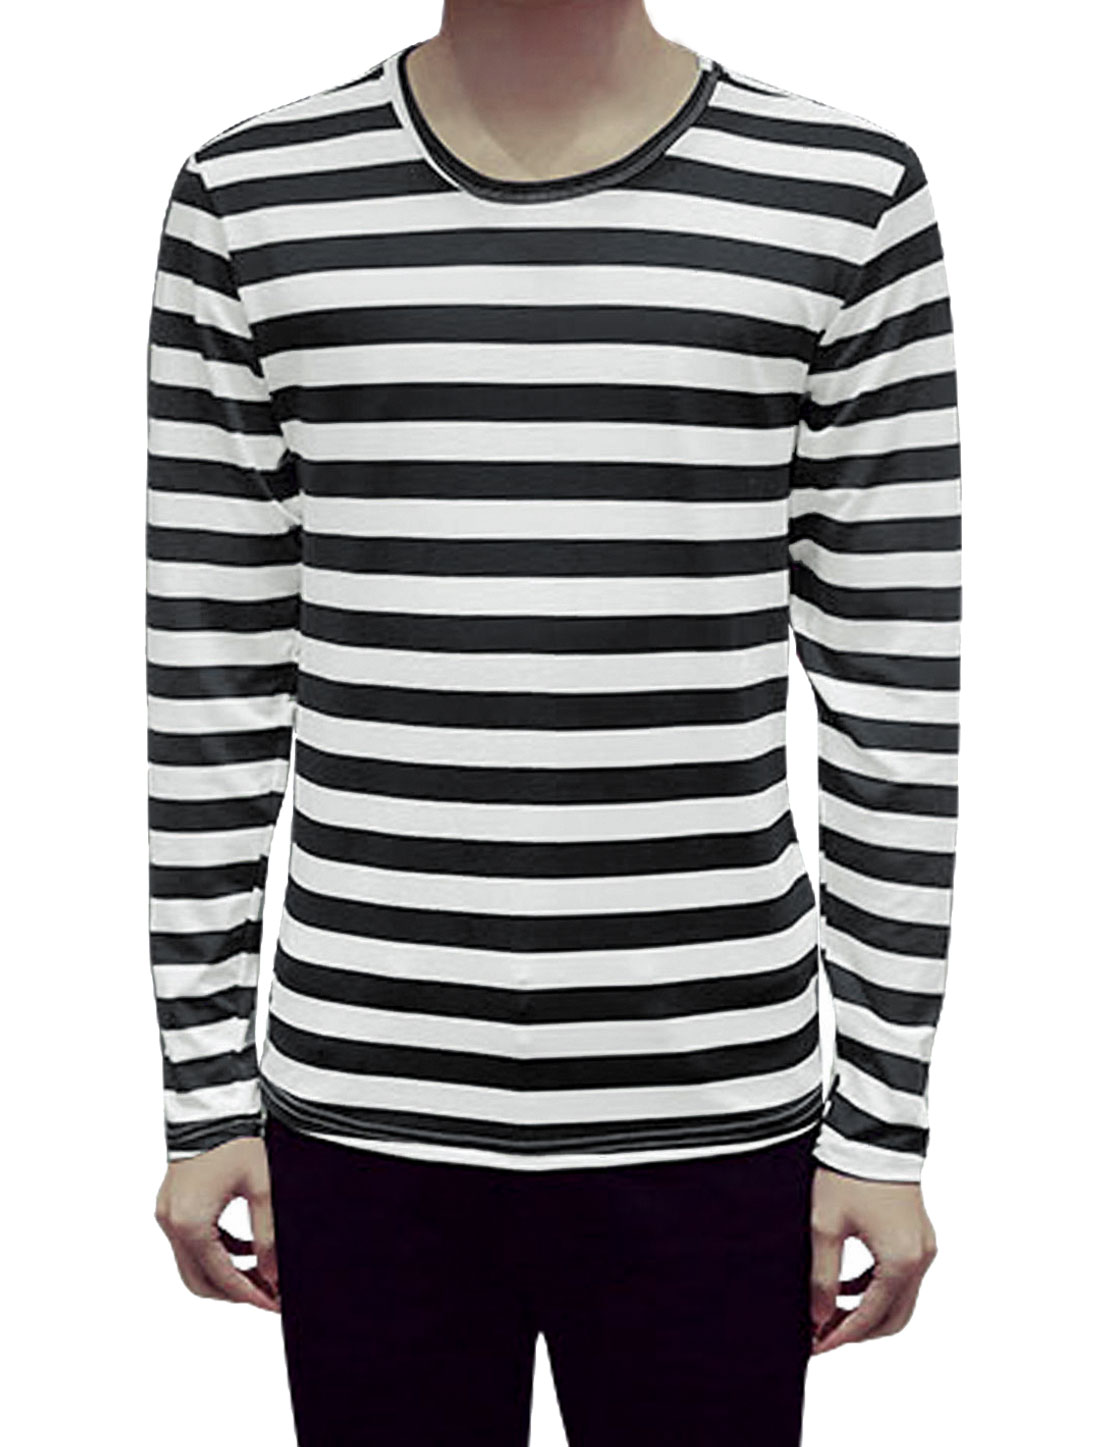 Men Long Sleeves Round Neck Stripes Slim Fit Tee Shirt Black L